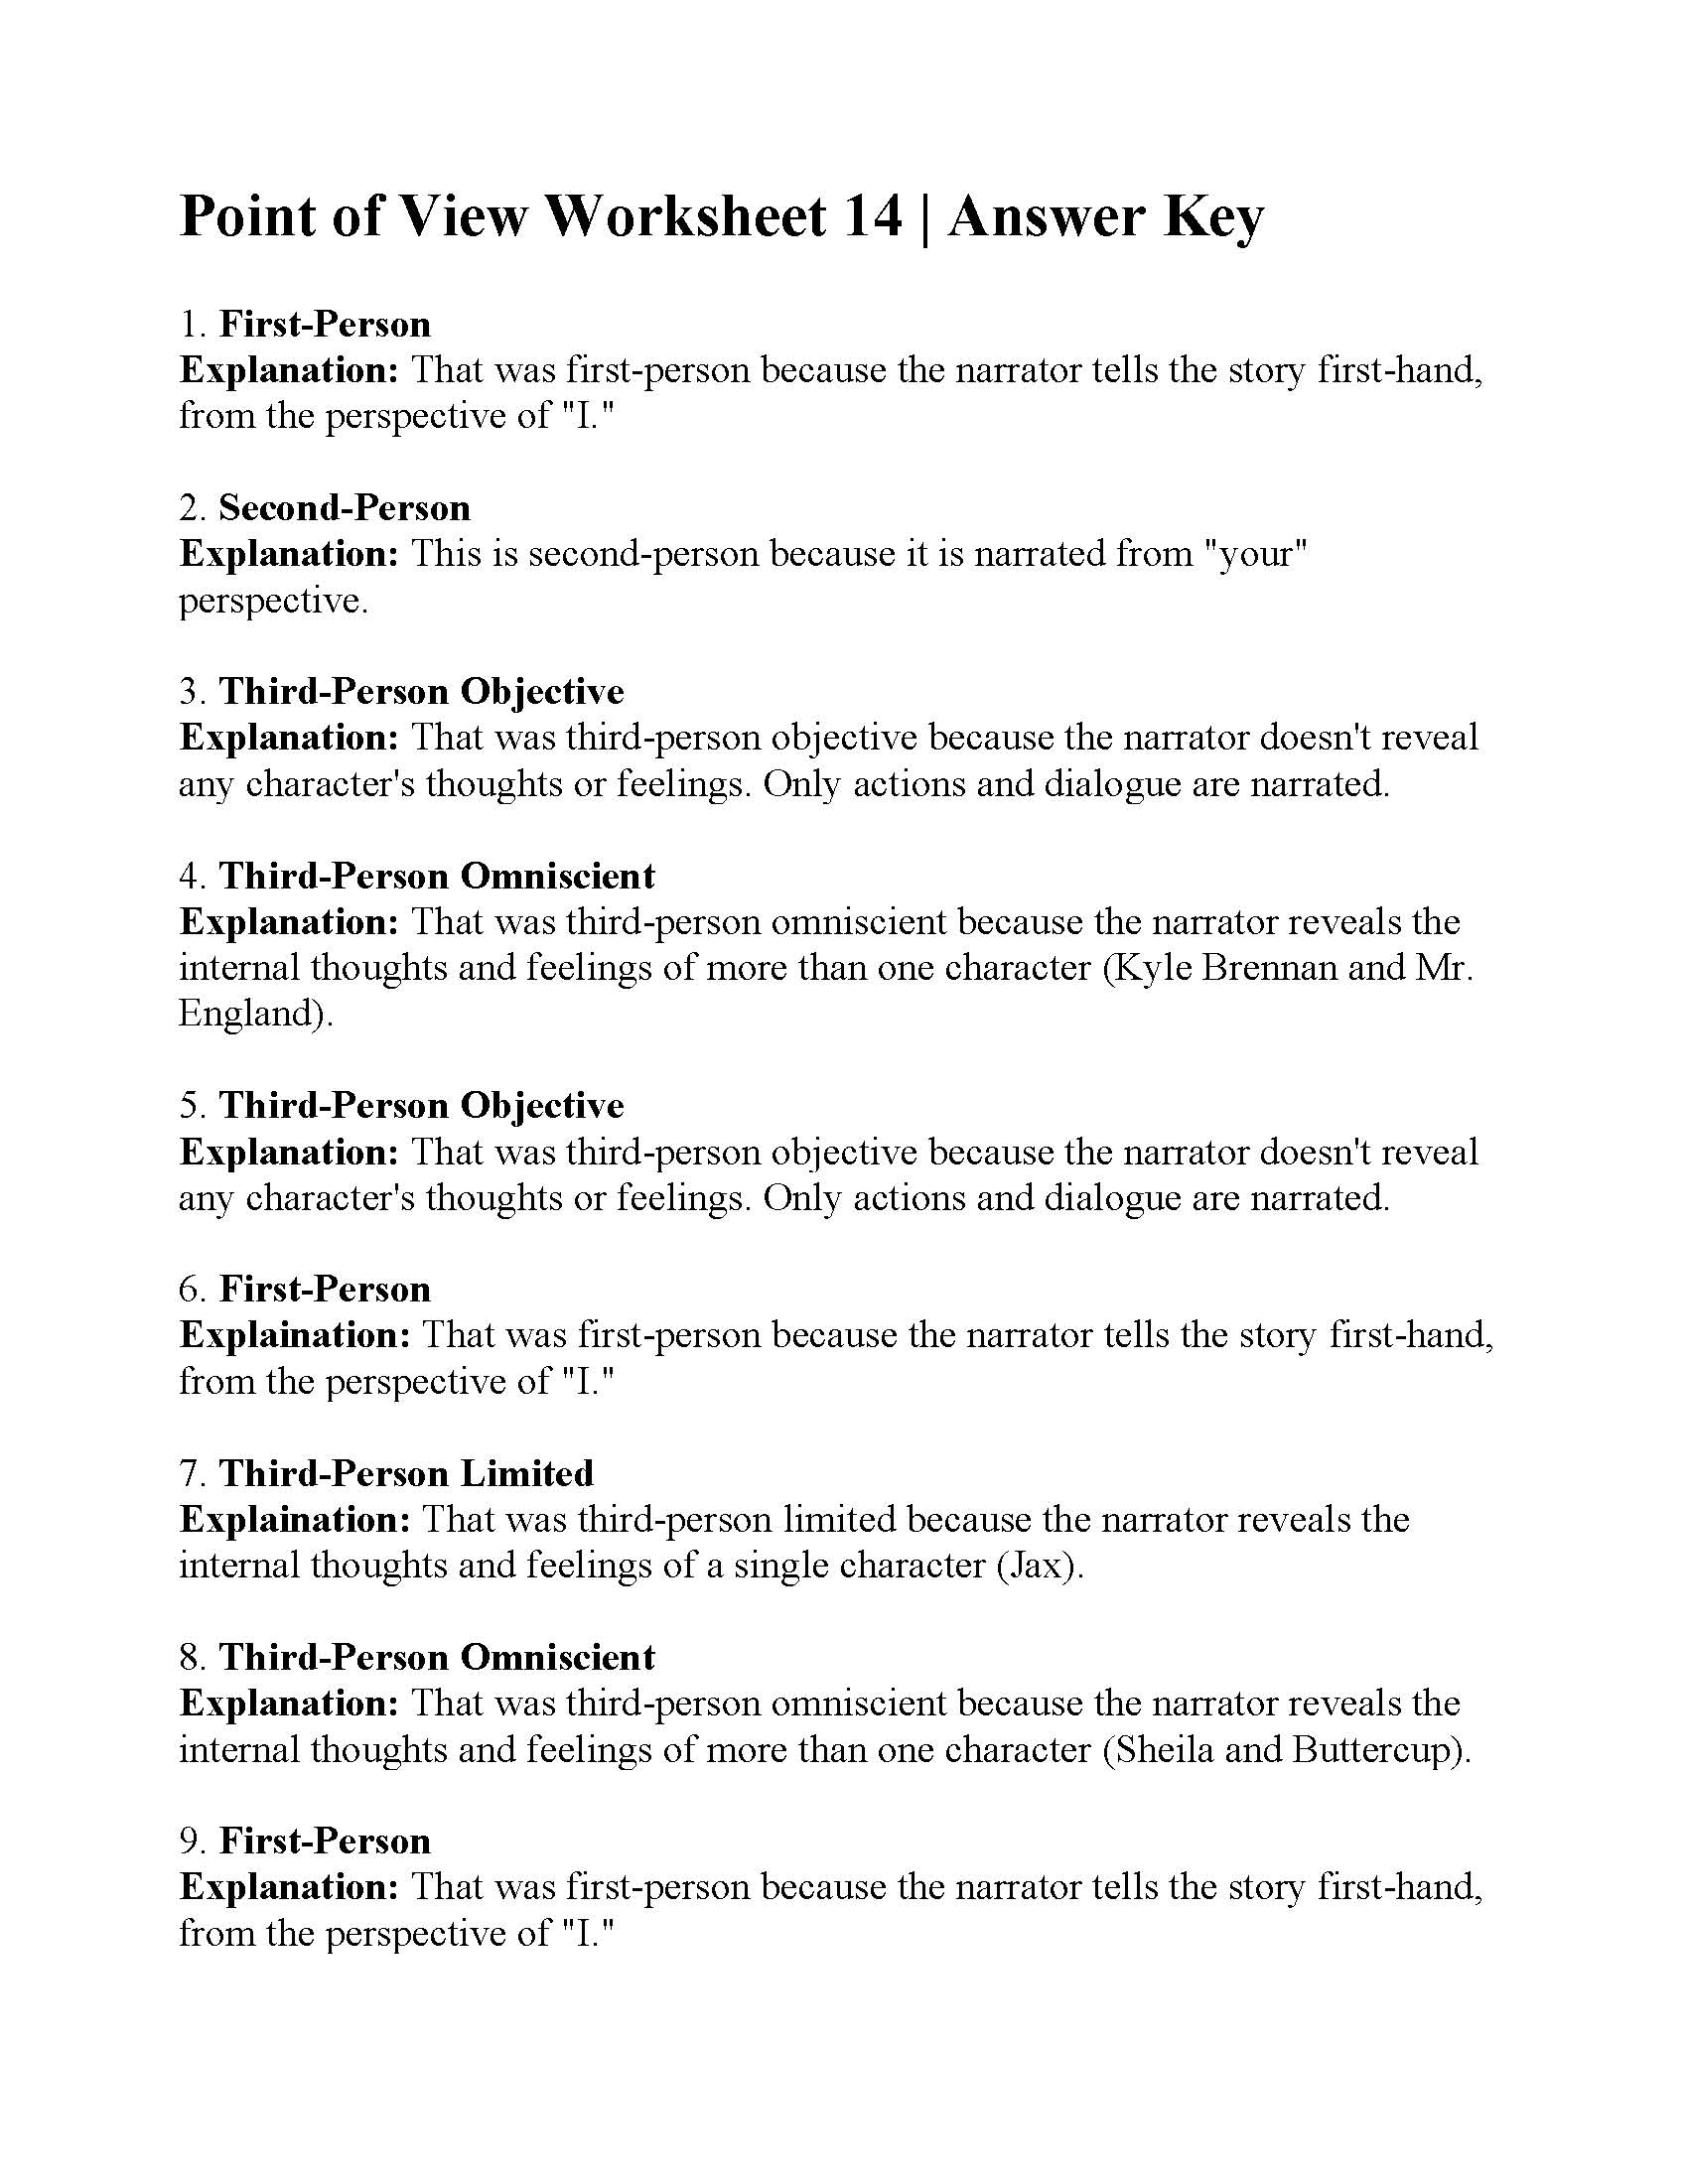 Point of View Worksheet 14 | Answers